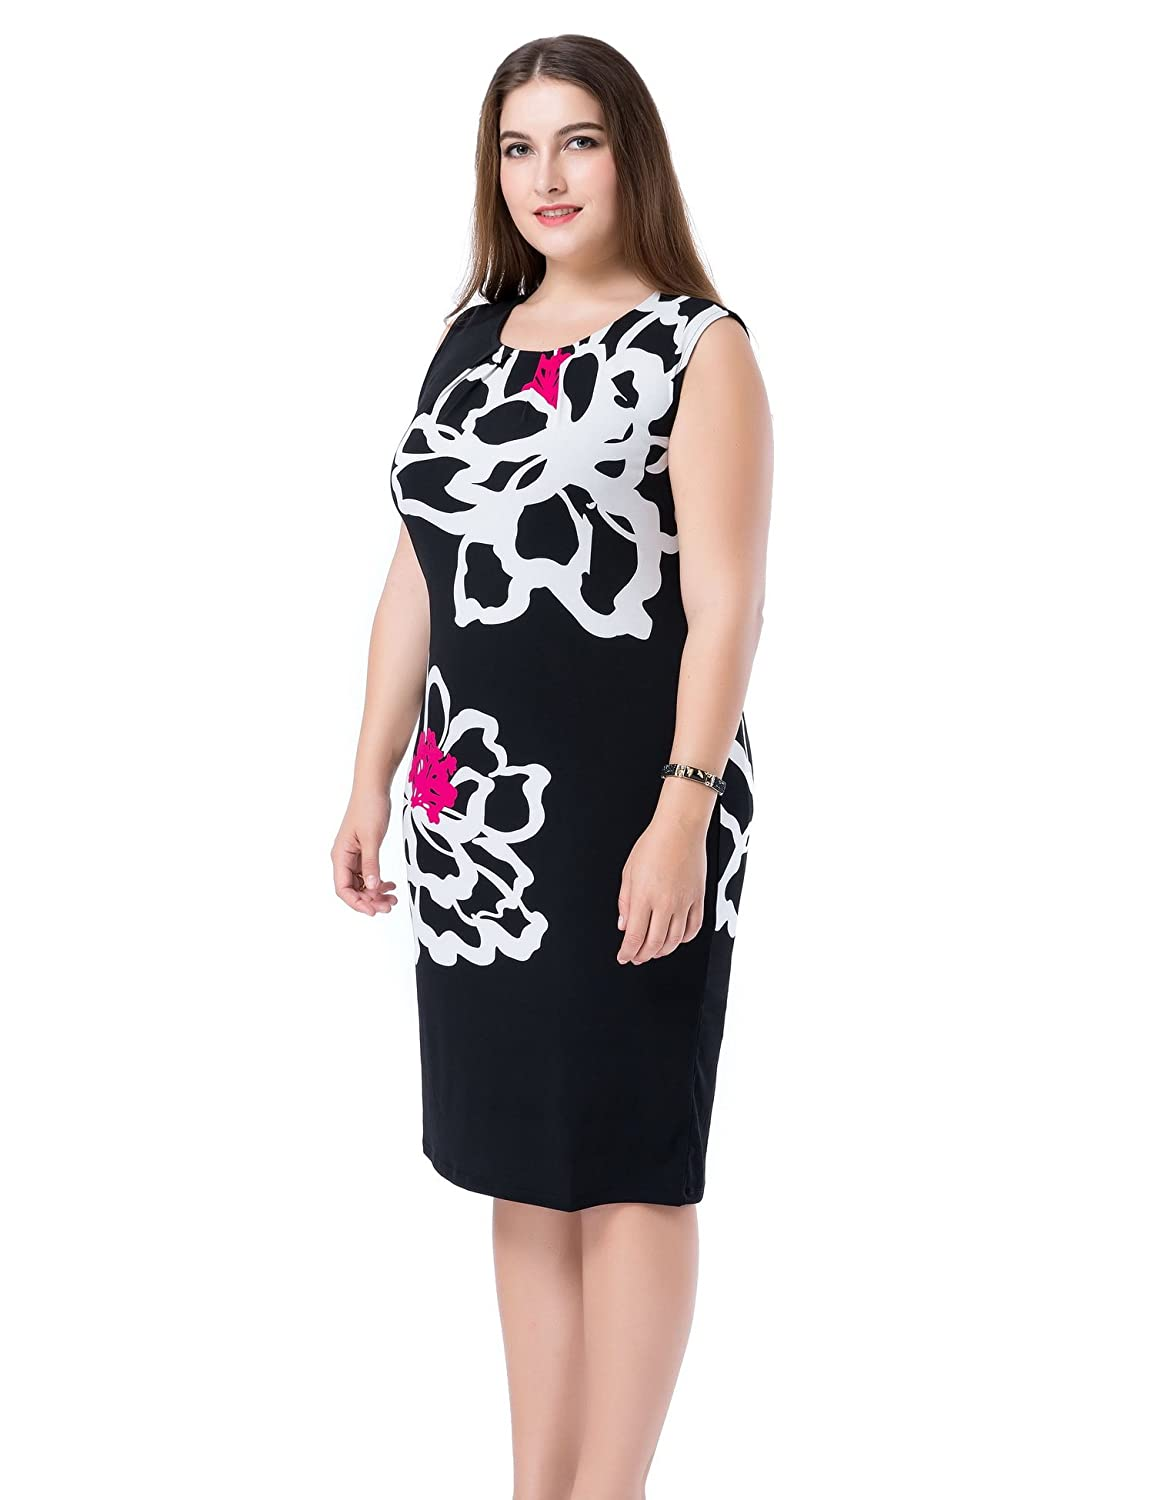 8077c971 Chicwe Women's Plus Size Lined Floral Printed Sleeveless Dress - Knee  Length Work and Casual Dress at Amazon Women's Clothing store: